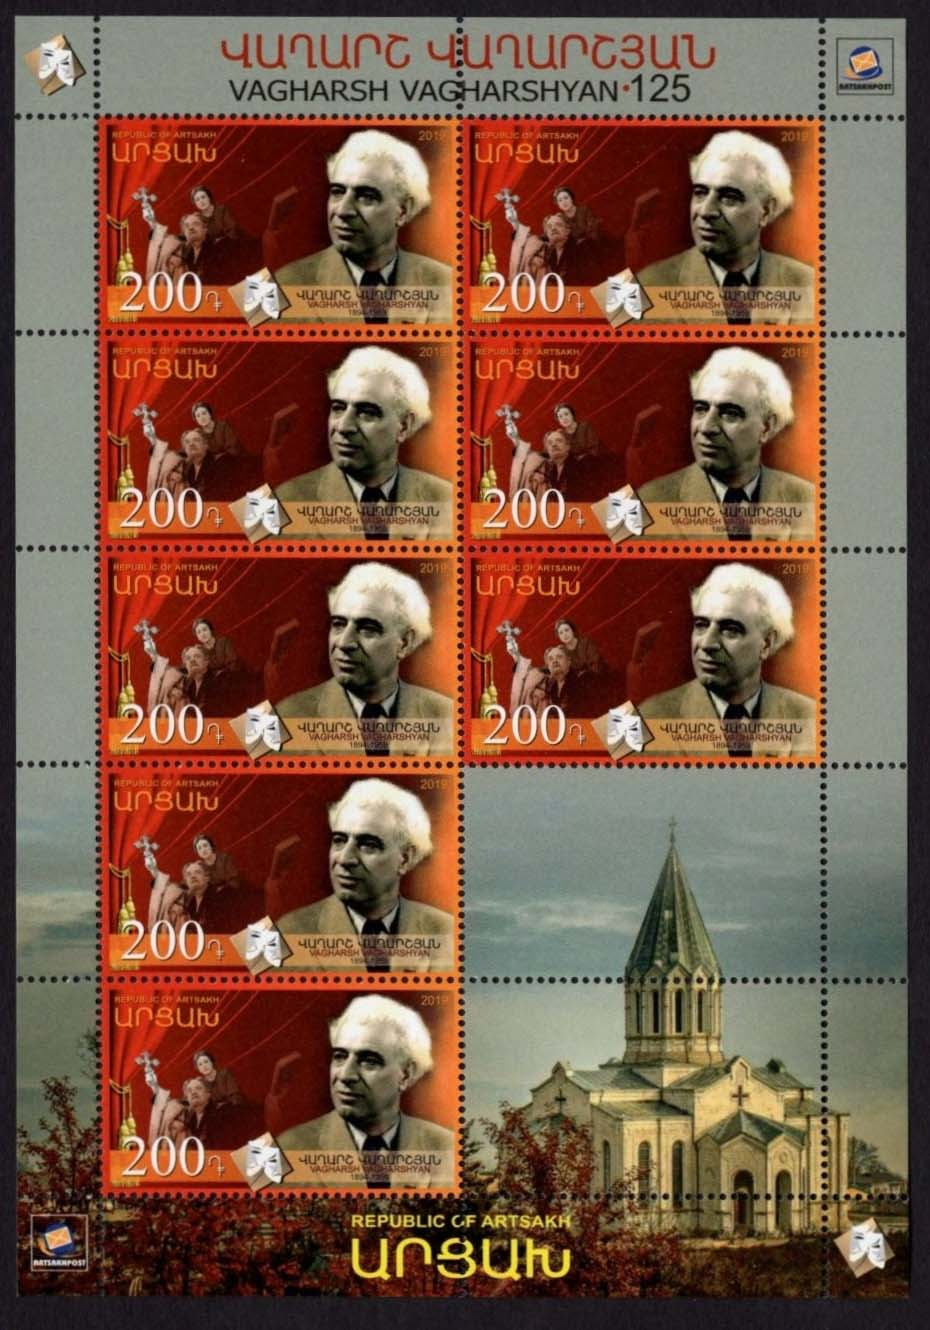 "<Font 2-189>Artsakh #189, Vagharsh Vagharshyan, 125th Birth Anniversary, Sheet of 8 plus two labels <br><a href=""/images/KA-189-Sheet.jpg\"">   <font color=green><b>View the image</b></a></font>"